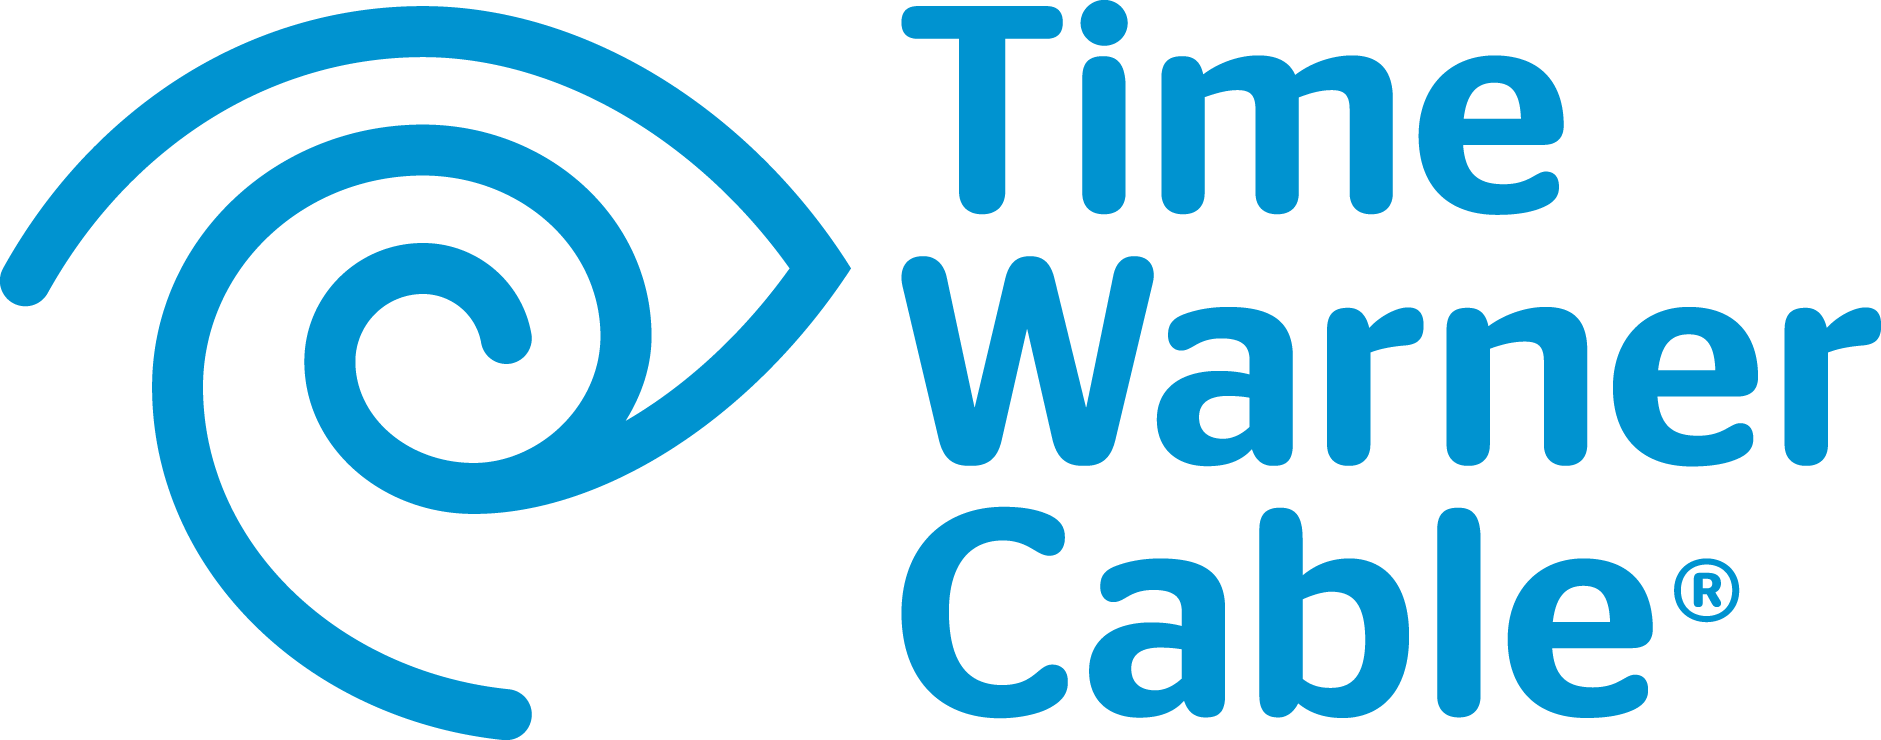 time_warner_cable FanCompass.png